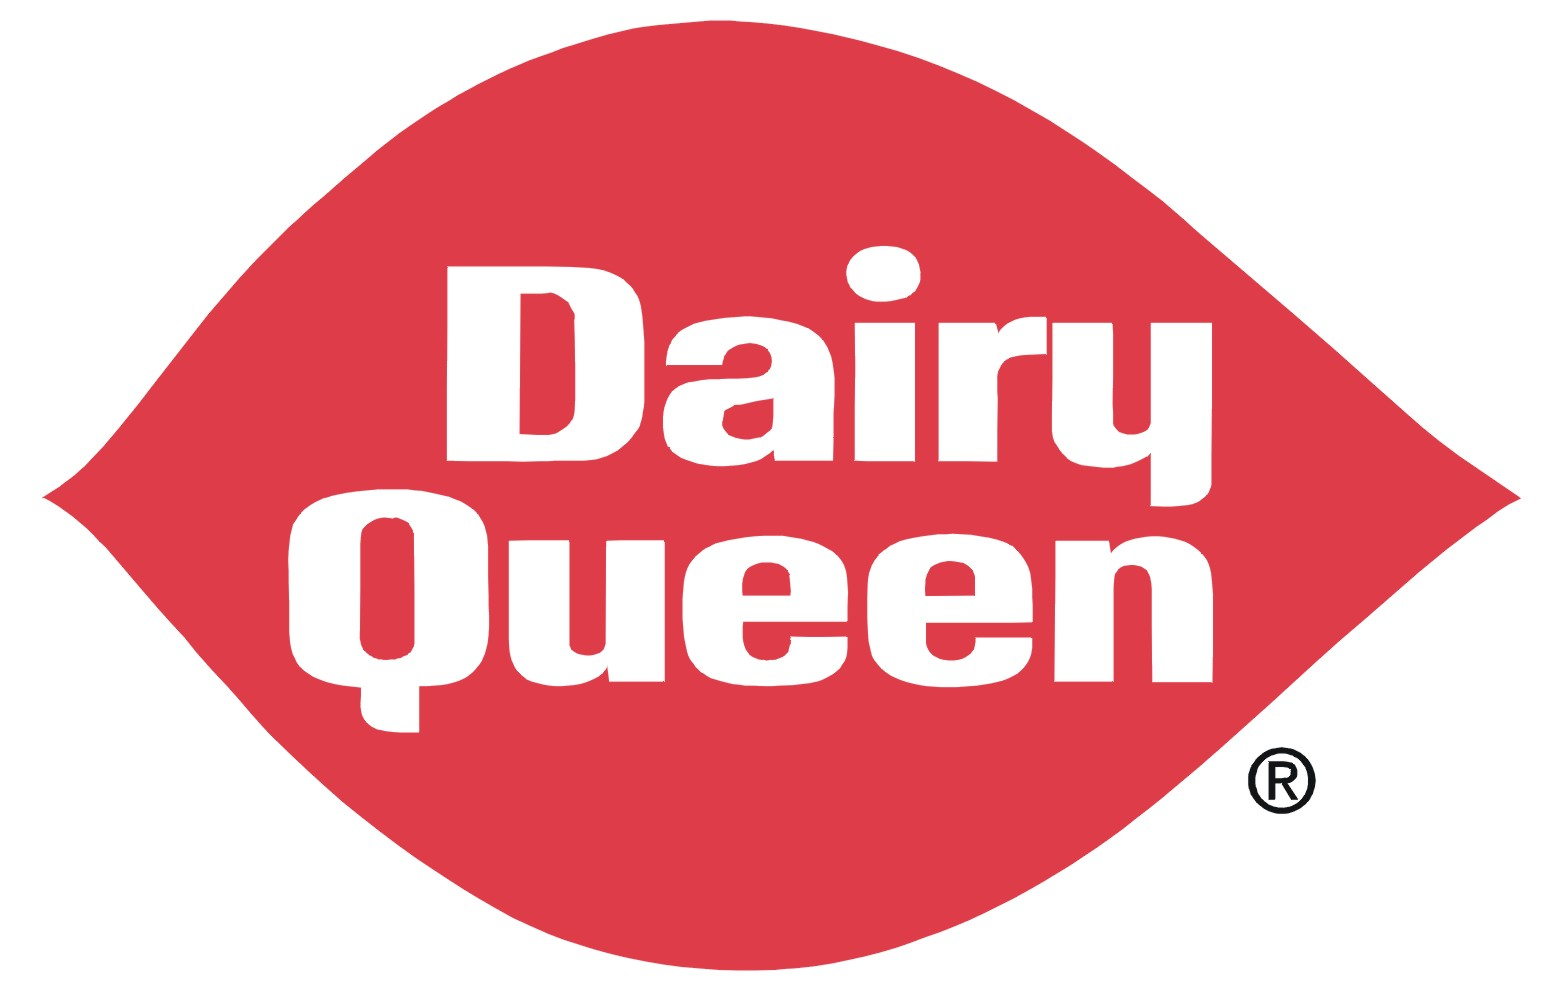 clip art dairy queen - photo #13